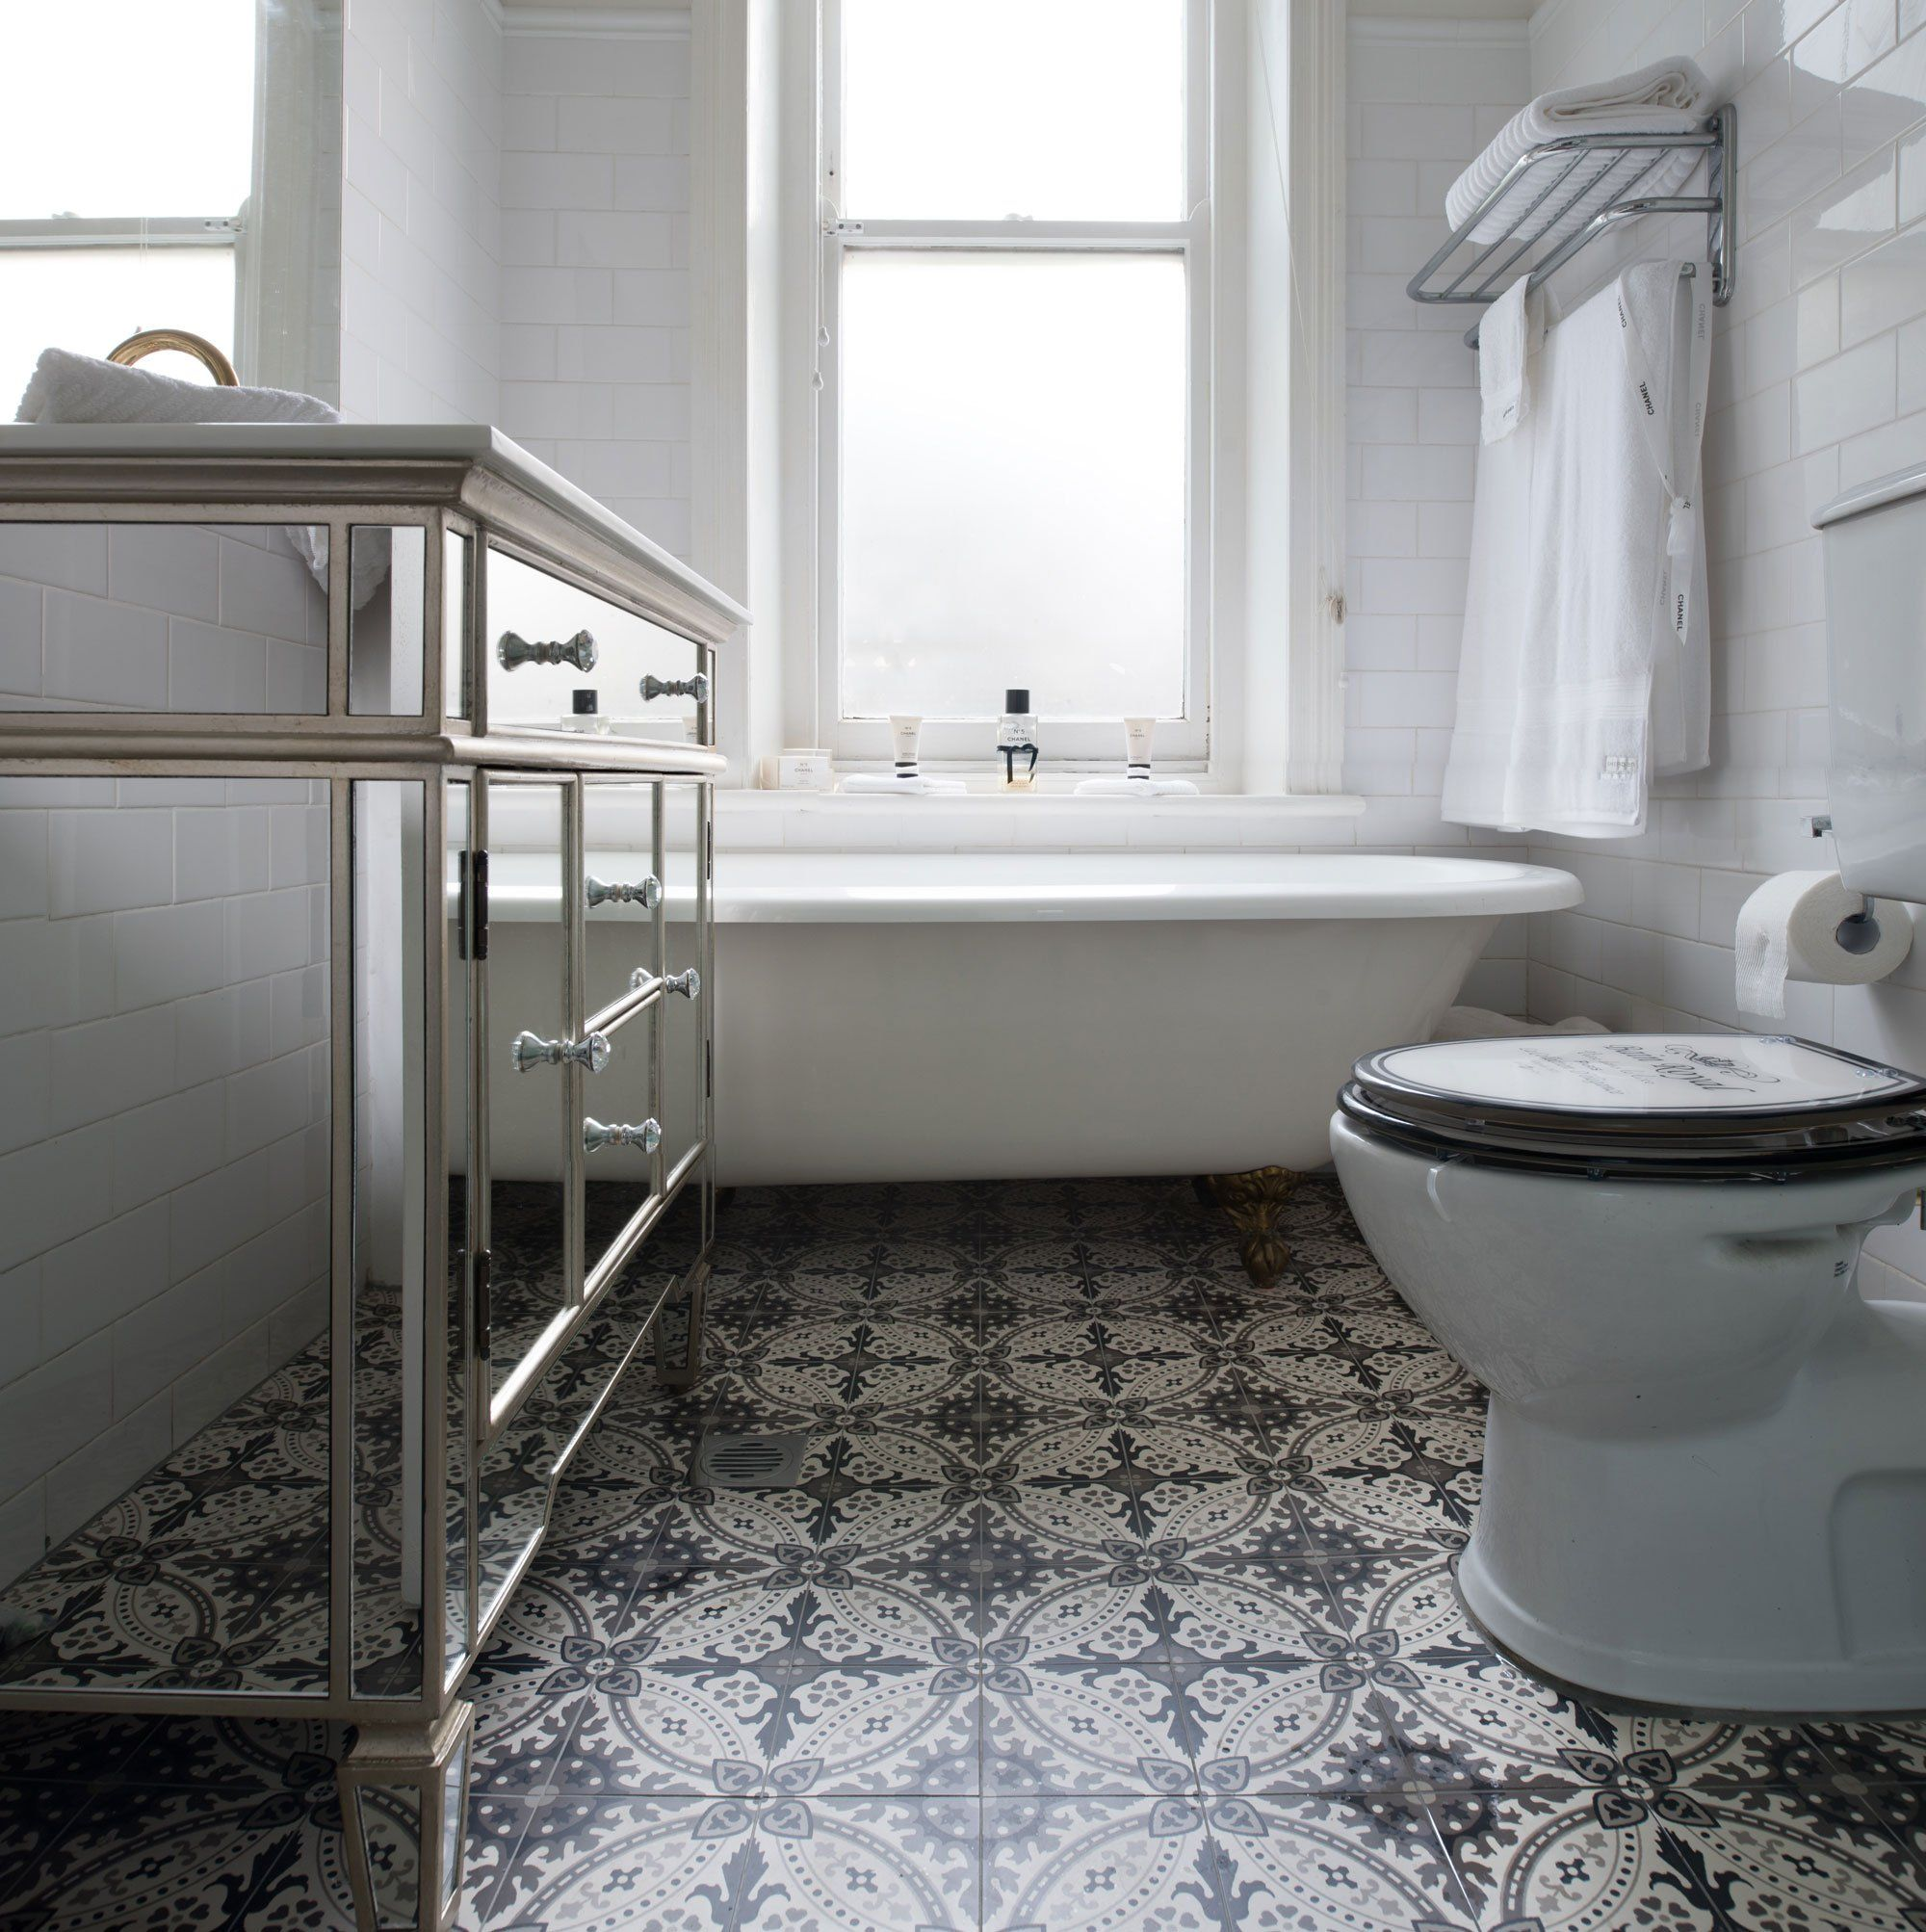 Victorian Tiles Style Guide In 2020 Victorian Bathroom Tile Bathroom Bathroom Wall Tile